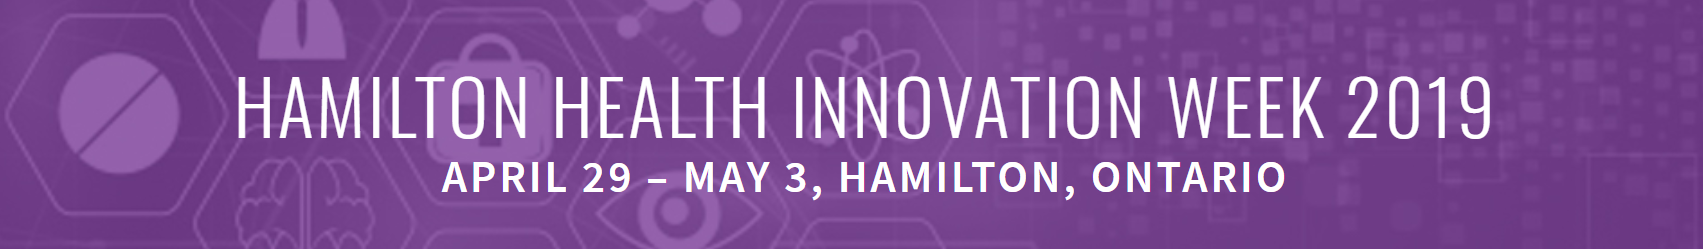 Hamilton Health innovation Week